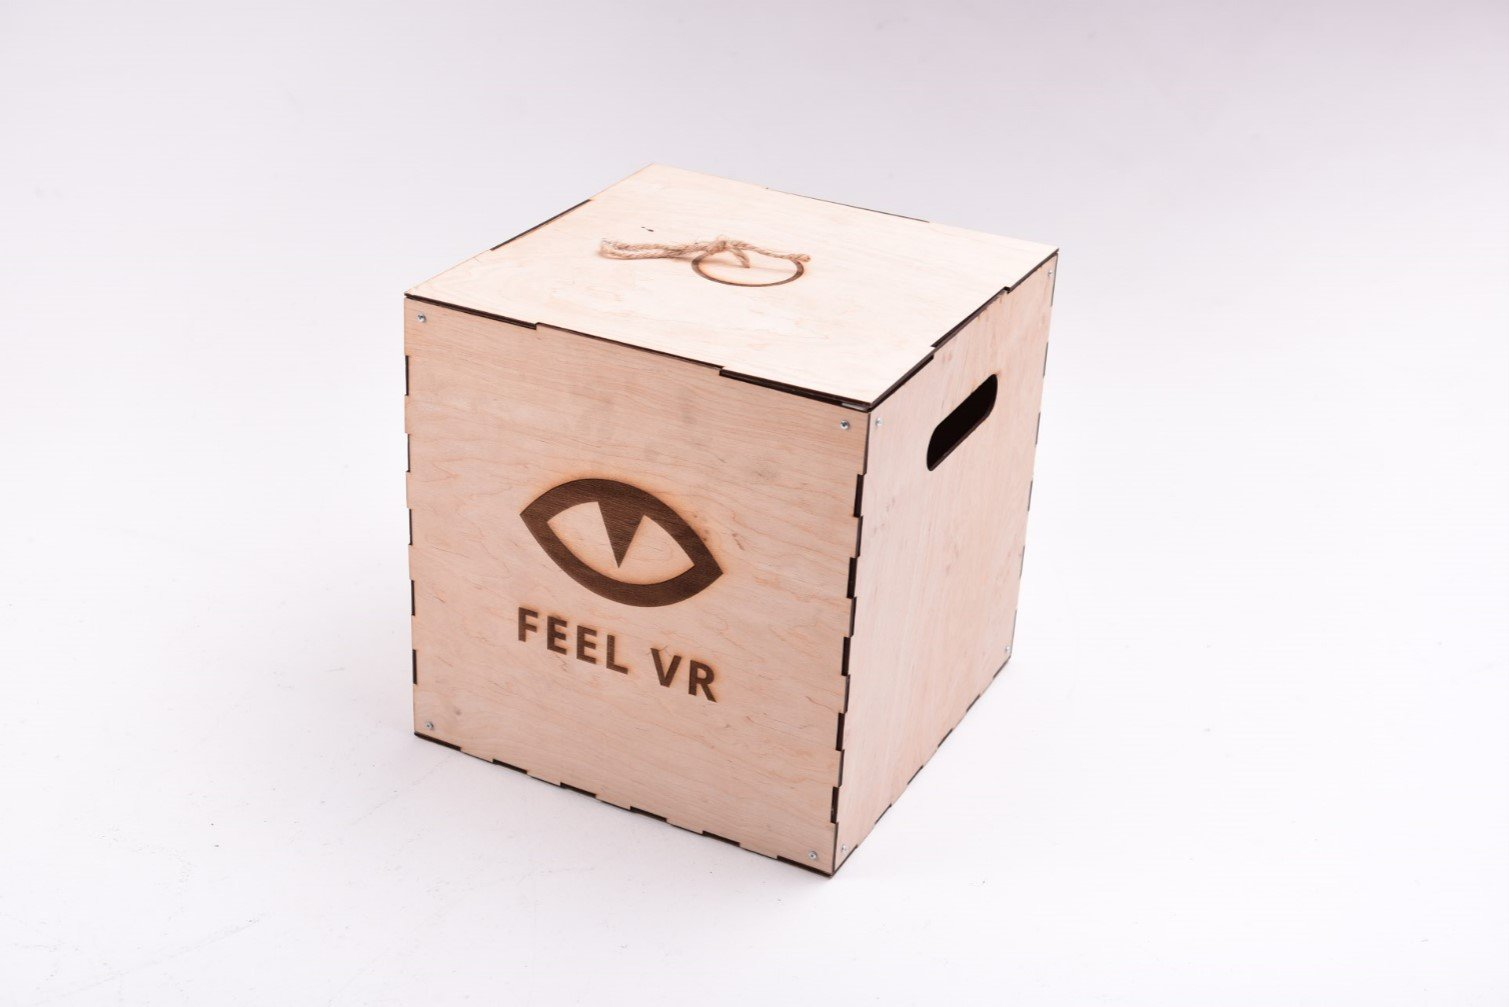 FeelVR packaging